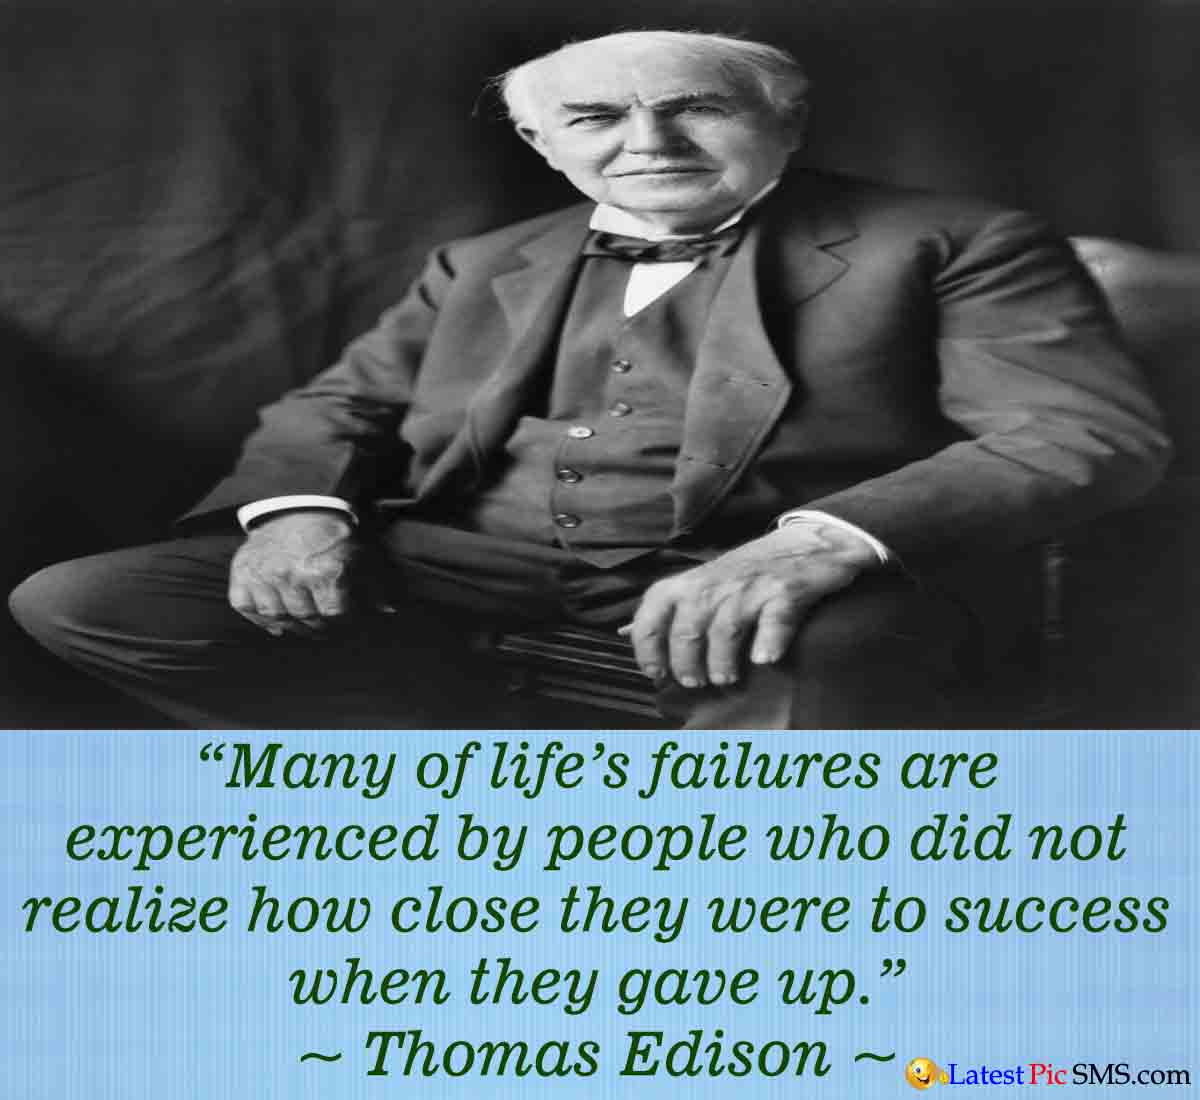 Thomas Edison life quotes - Thoughts on Life Images for Whatsapp and Facebook